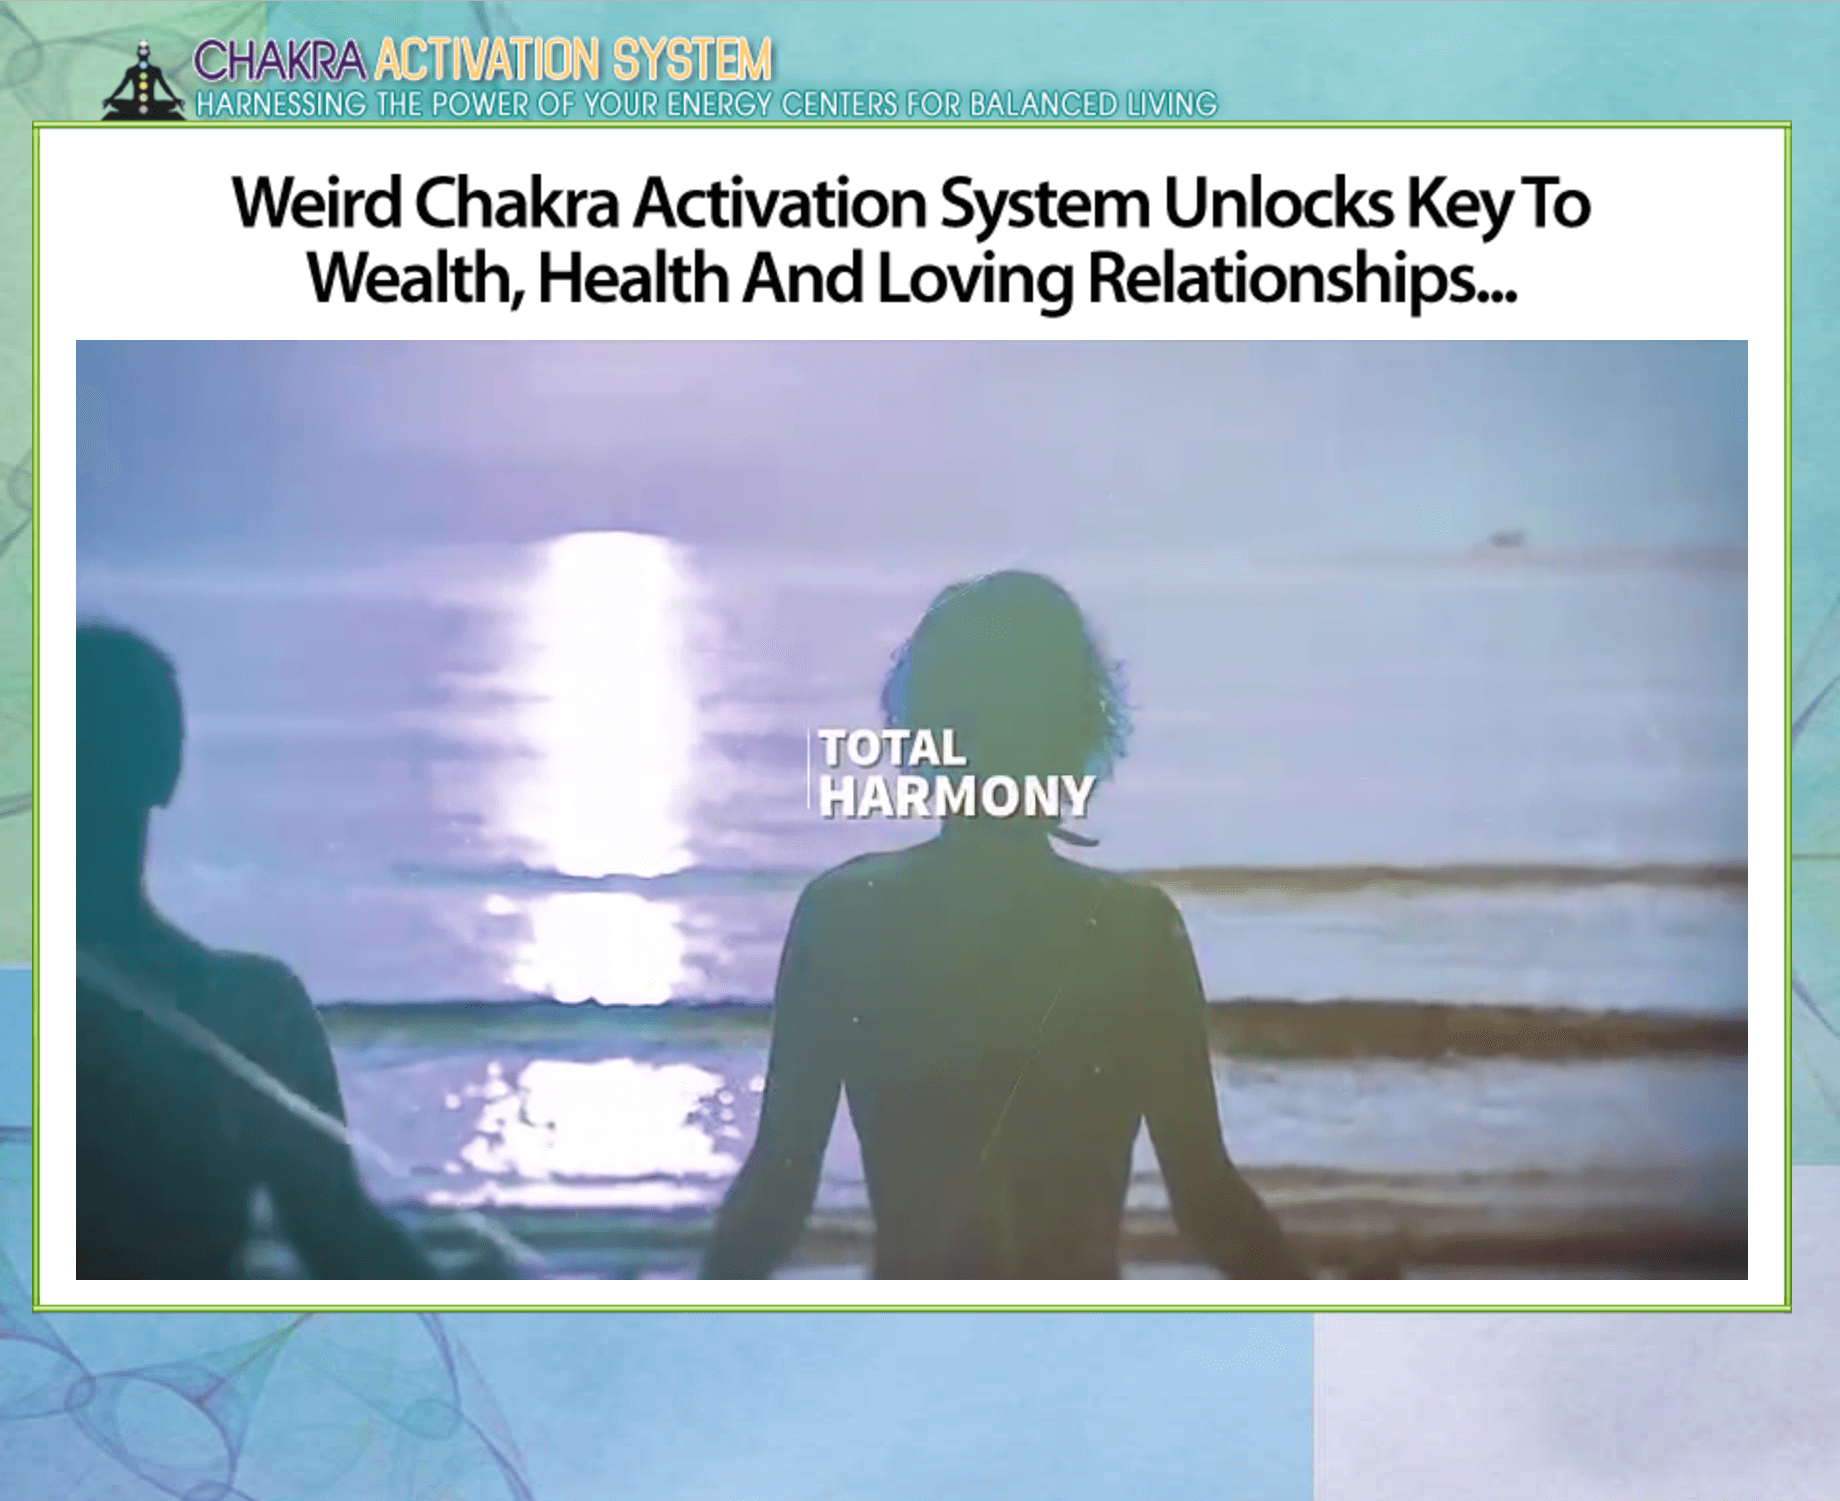 Unlocks key to wealth, health and loving relationships